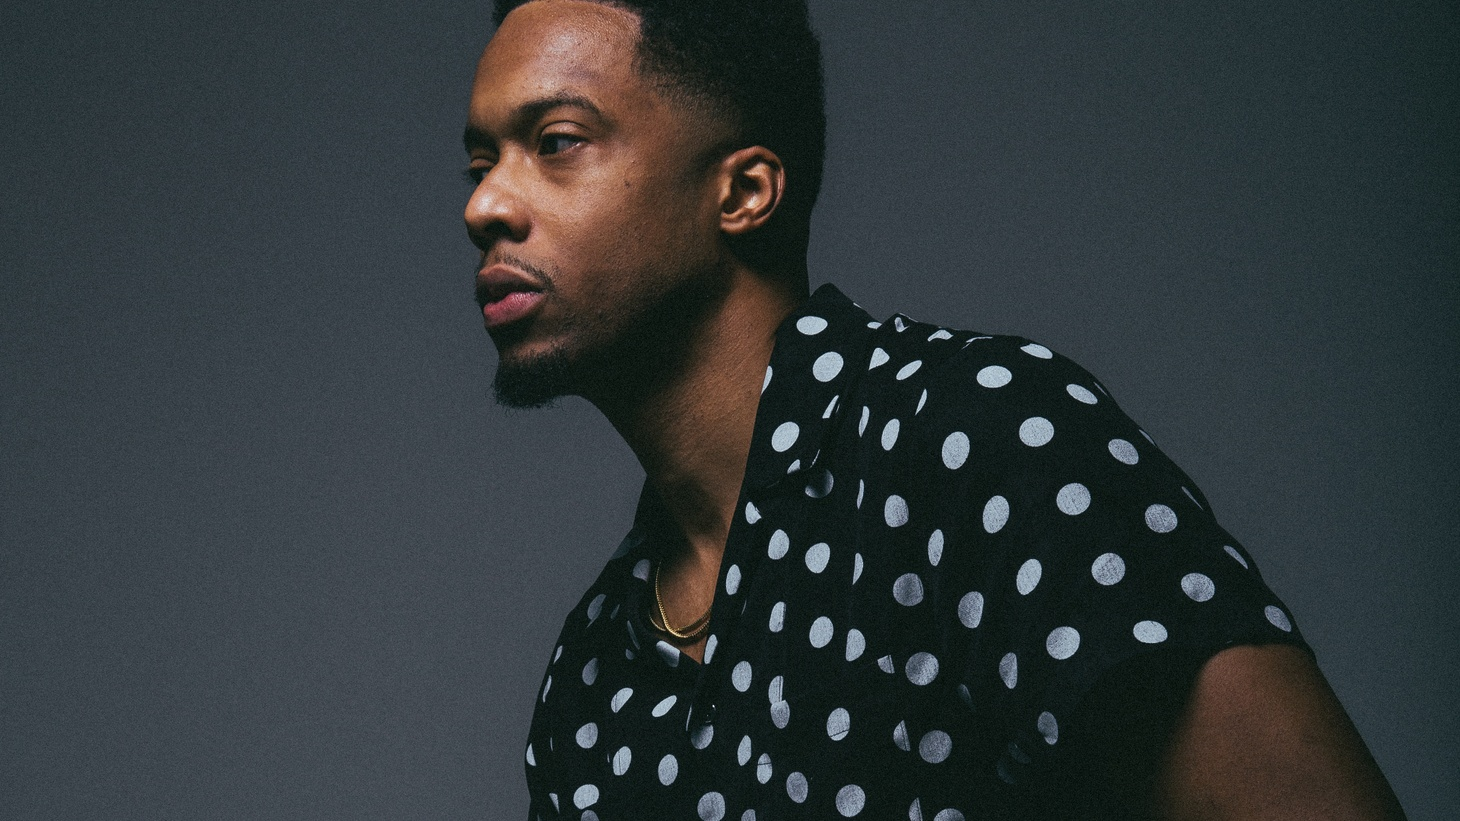 """Detroit hip-hop artist Black Milk takes an unflinching look at the unstable times we are living through. Each of his songs has a purpose, and """"Laugh Now Cry Later"""" is no exception, as the jam portrays an emotional tug of war around social media."""